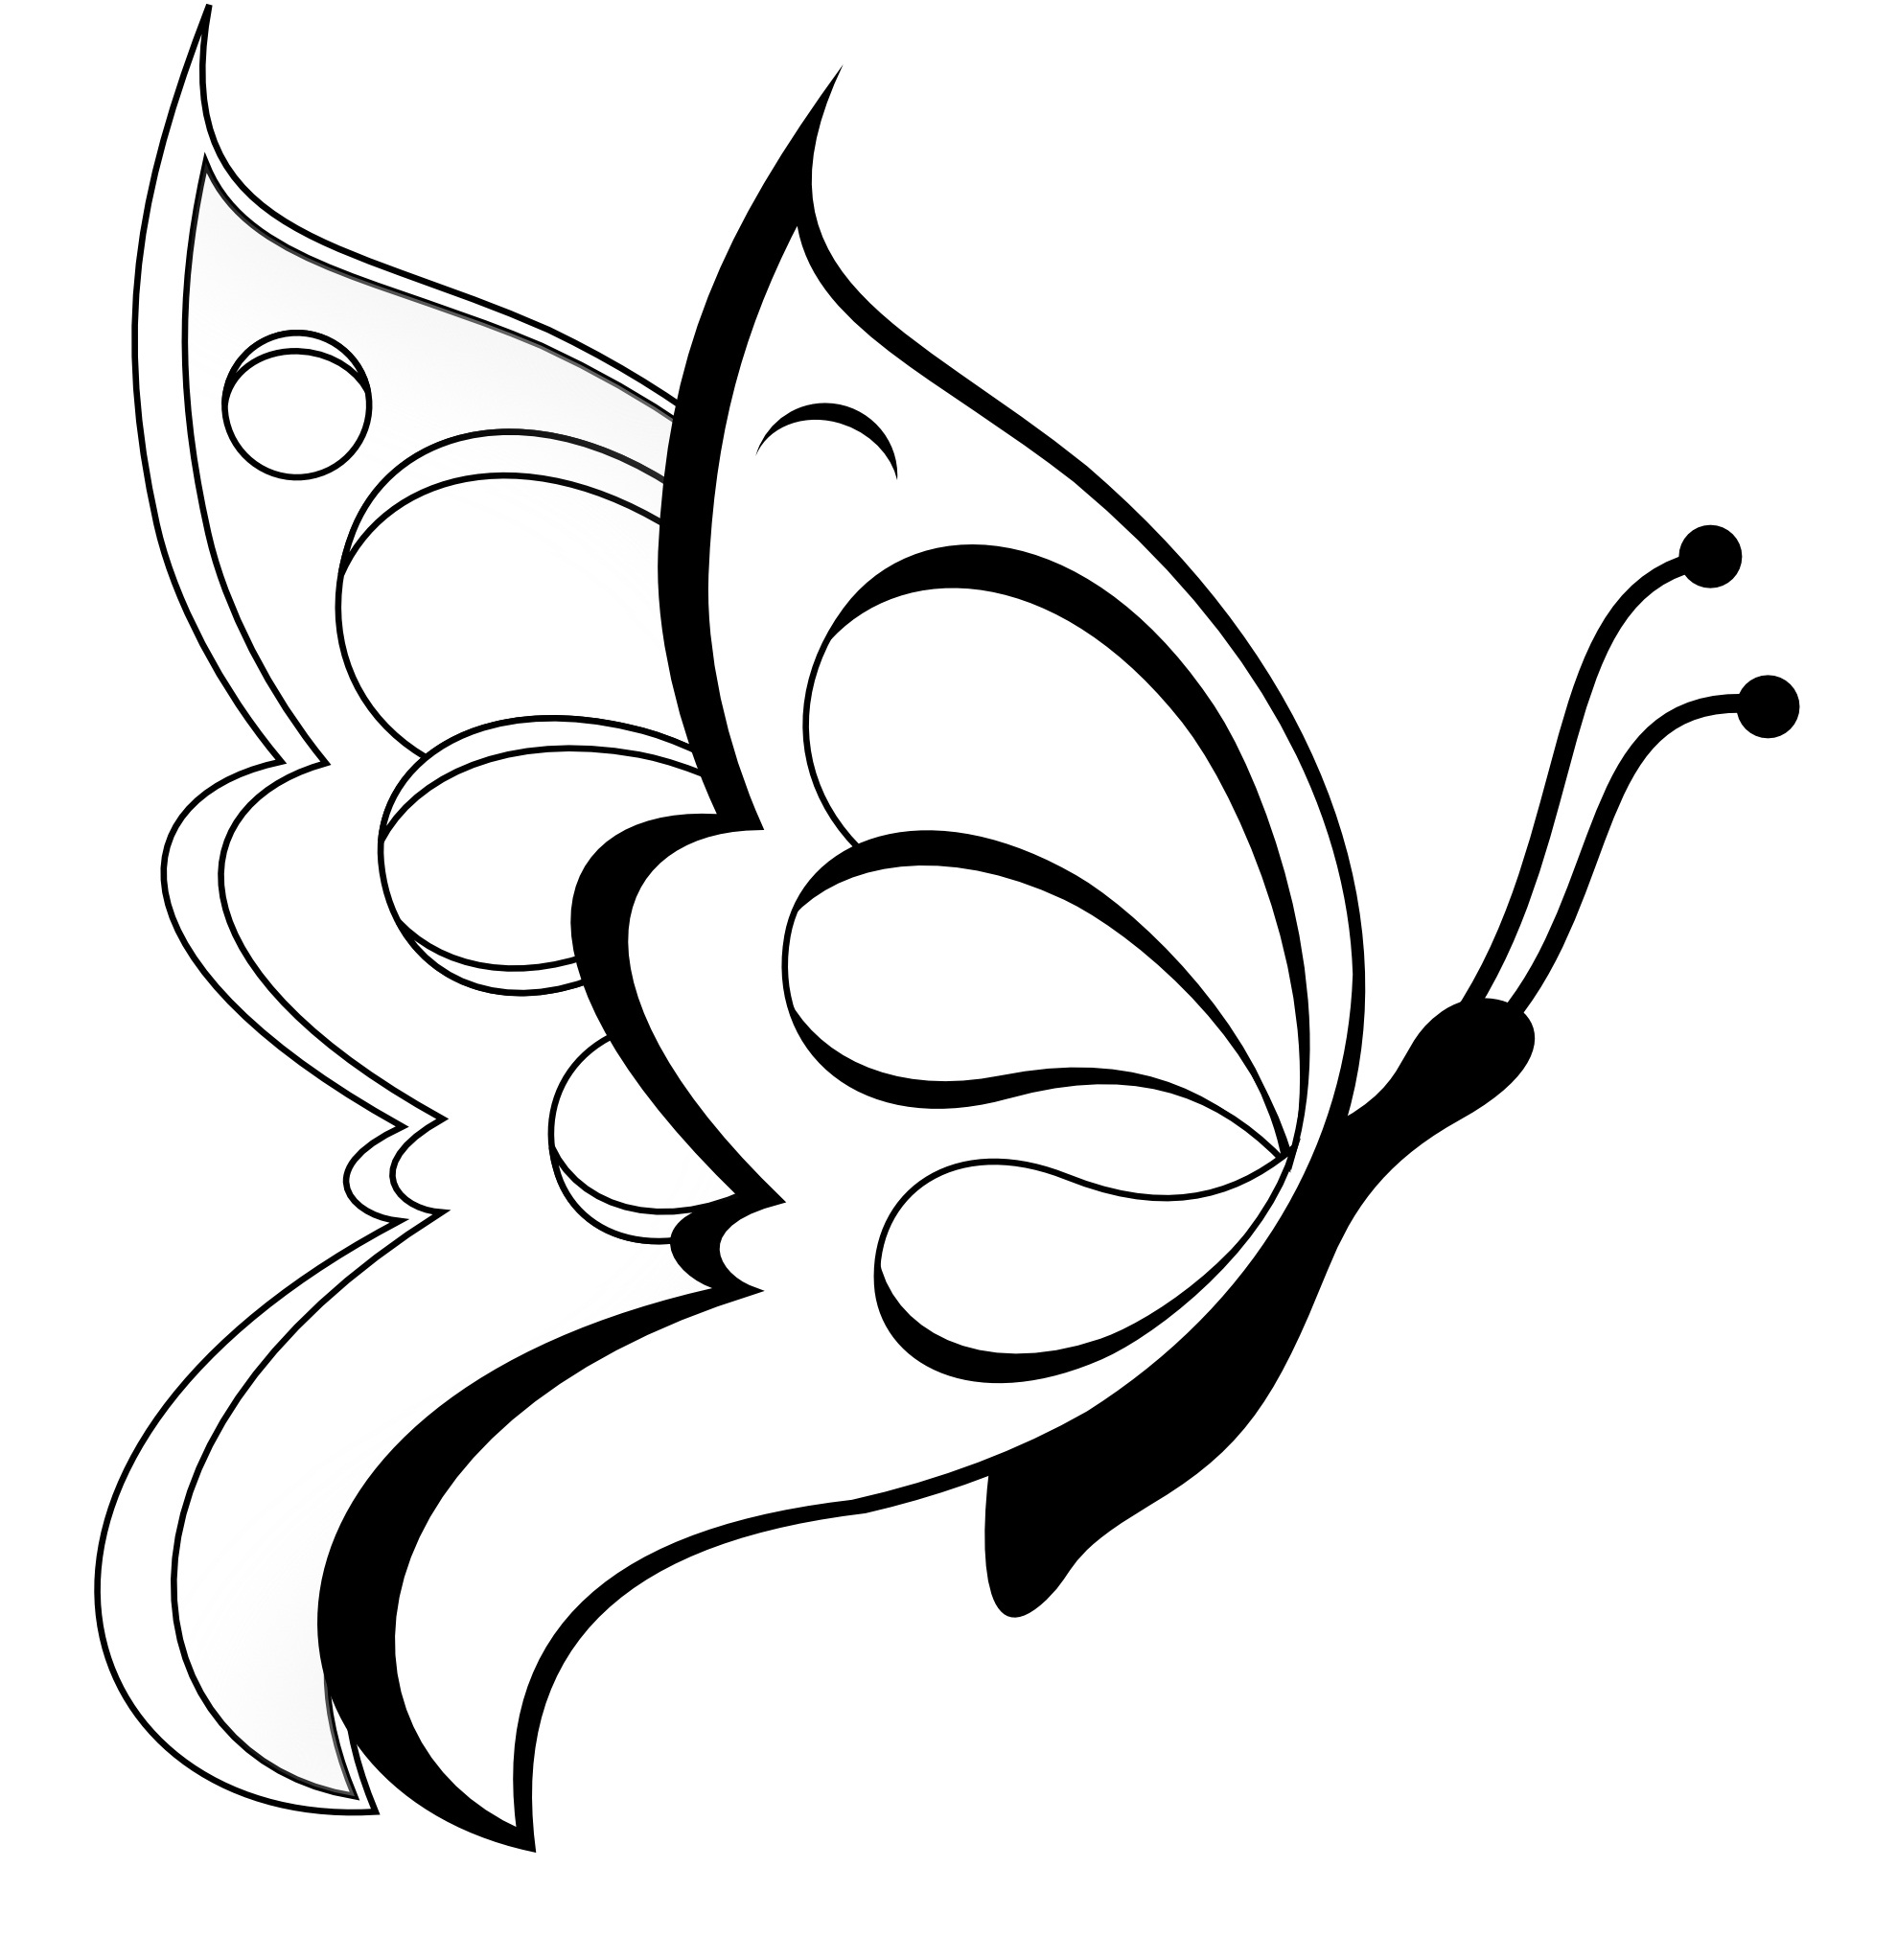 simple easy butterfly coloring pages simple easy butterfly coloring pages easy pages butterfly coloring simple